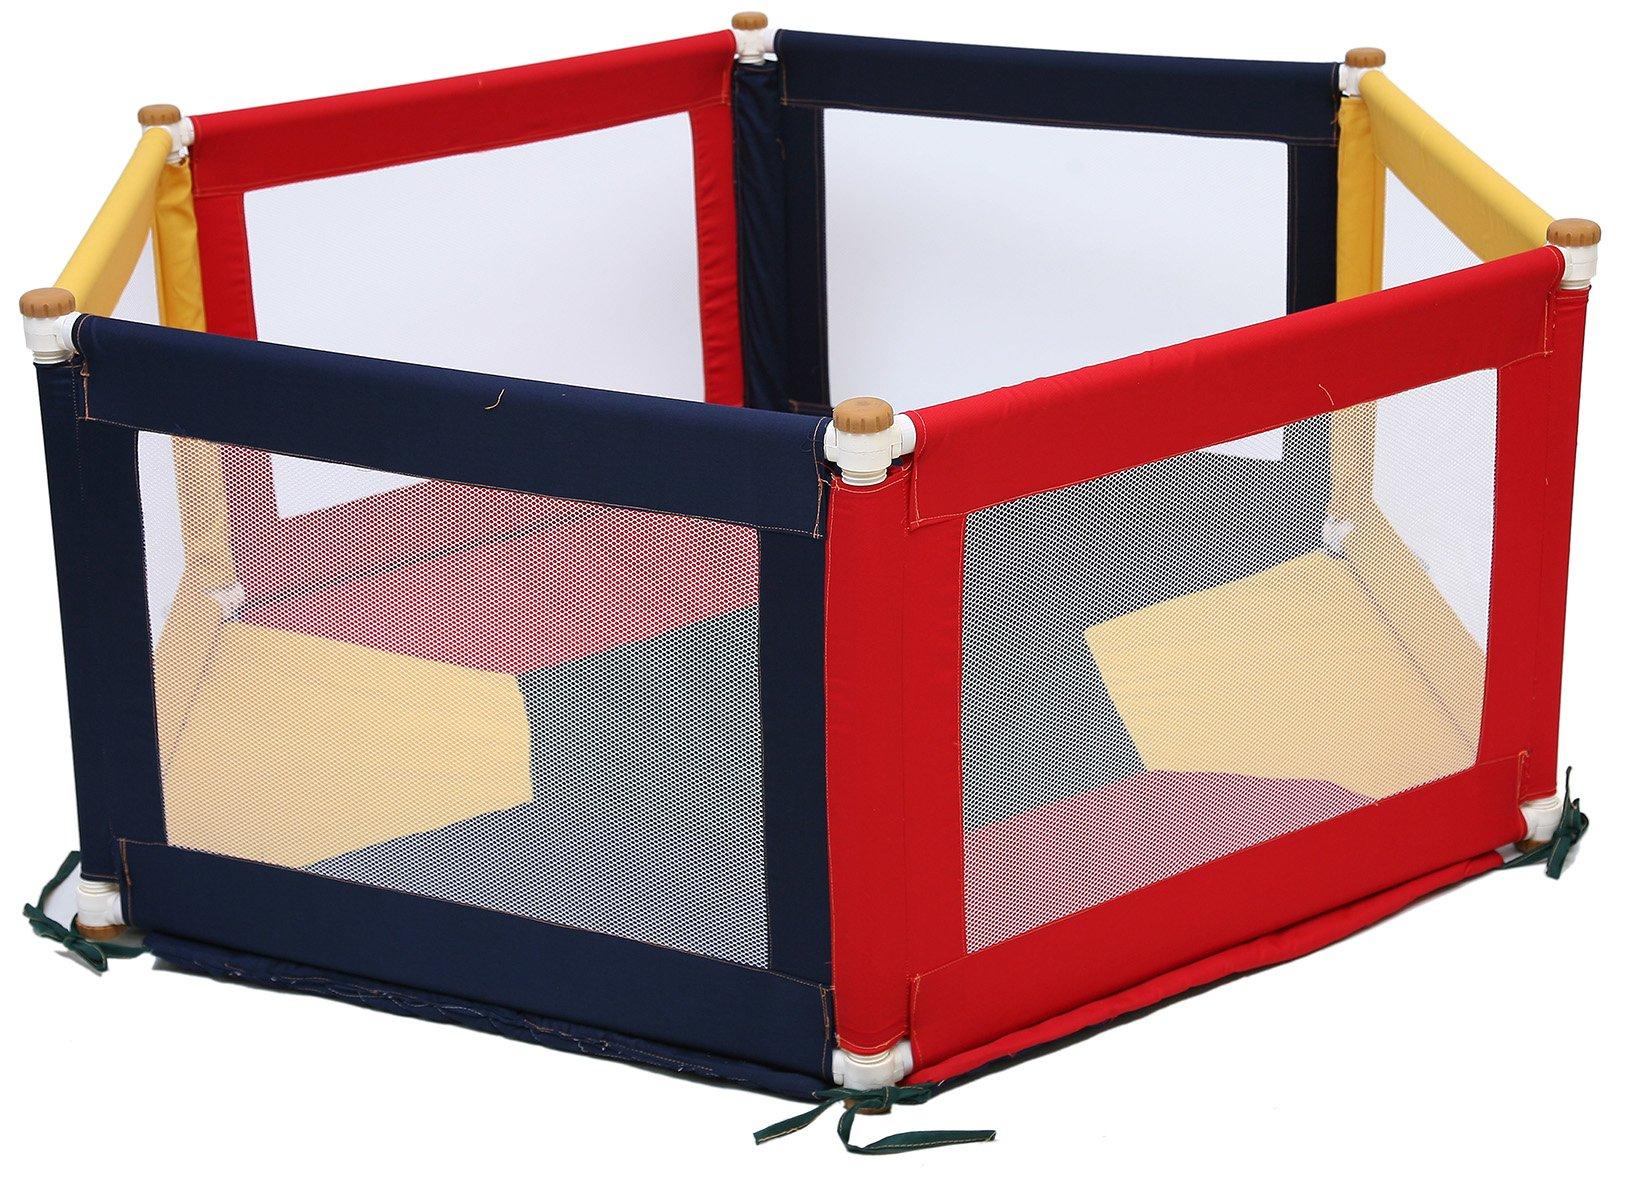 TikkTokk Pokano Fabric Playpen/Mat (Hexagonal, Colourful) TikkTokk Fabric Baby Playpen - keep baby safe & secure whilst providing a large play area Crafted in beautiful, durable polycotton Thick padded, fitted floor mat 1